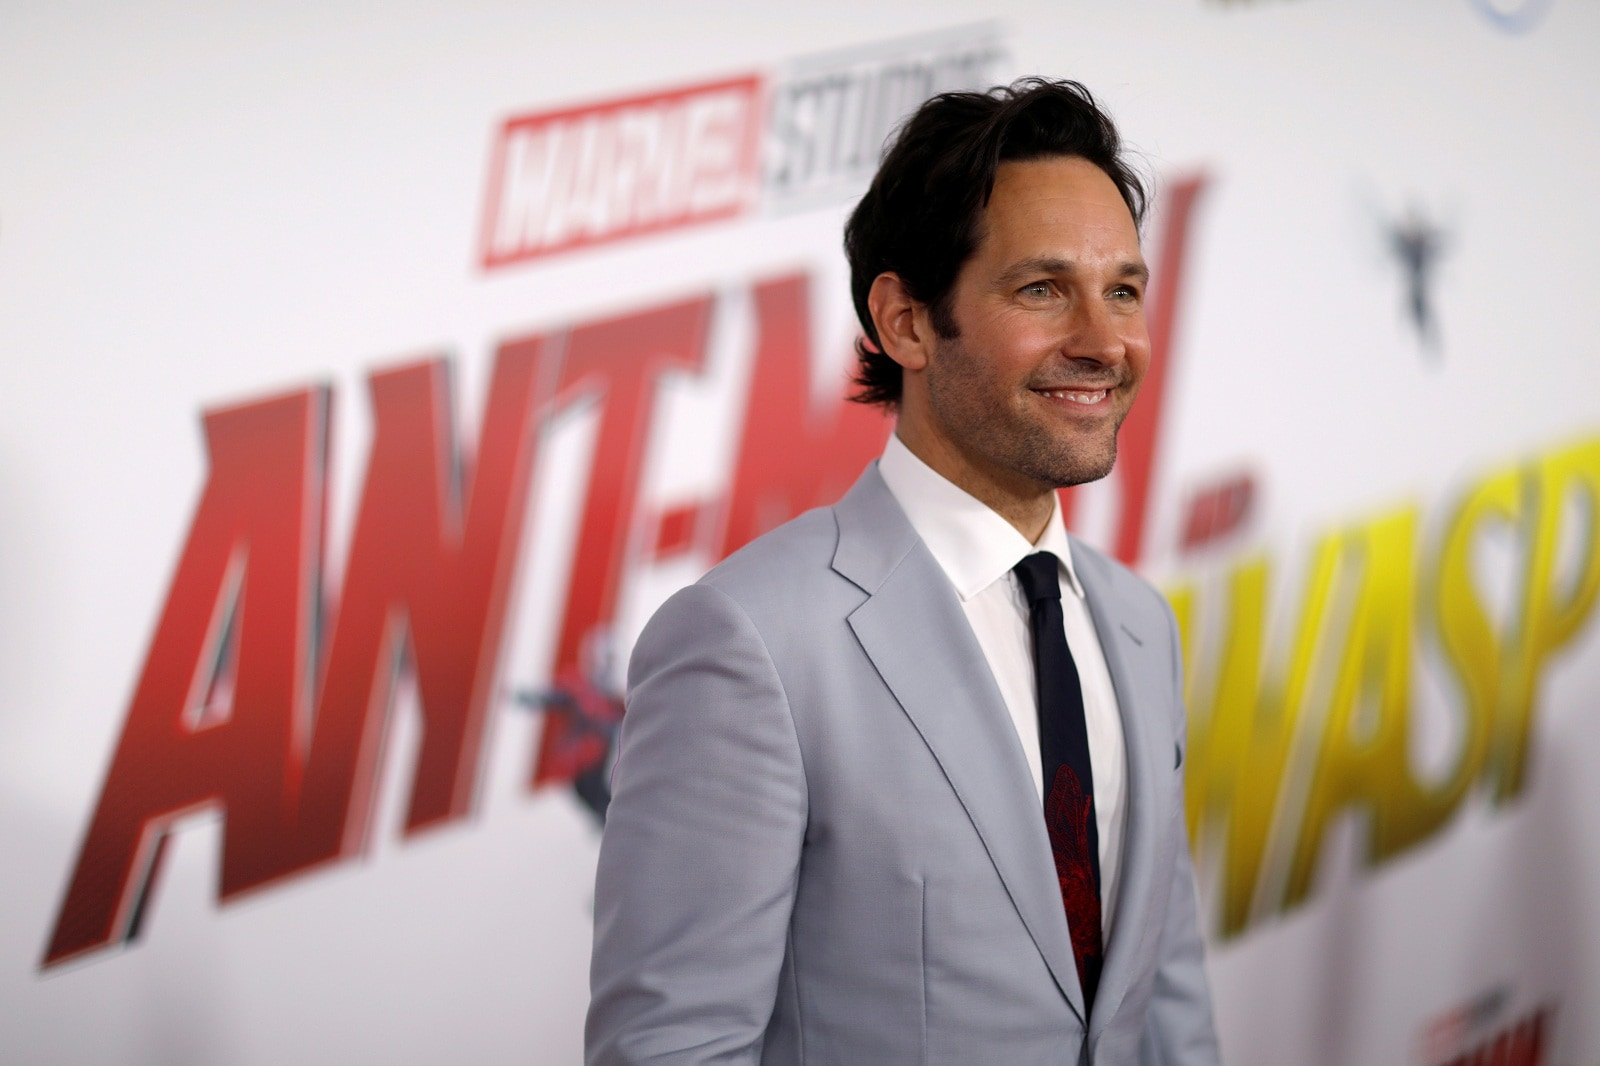 #9. Paul Rudd: Net Earnings: $41 million. Ant-Man may be small (sometimes) but his earnings are big enough to garner a spot on the Celebrity 100. Rudd's deals in the Marvel Universe include a percentage of profit, meaning he made eight figures from both 'Avengers: Endgame' and 'Ant-Man.' The veteran actor also has roles in smaller films 'Ideal Home' and 'The Catcher Was a Spy.' (Image: Reuters)